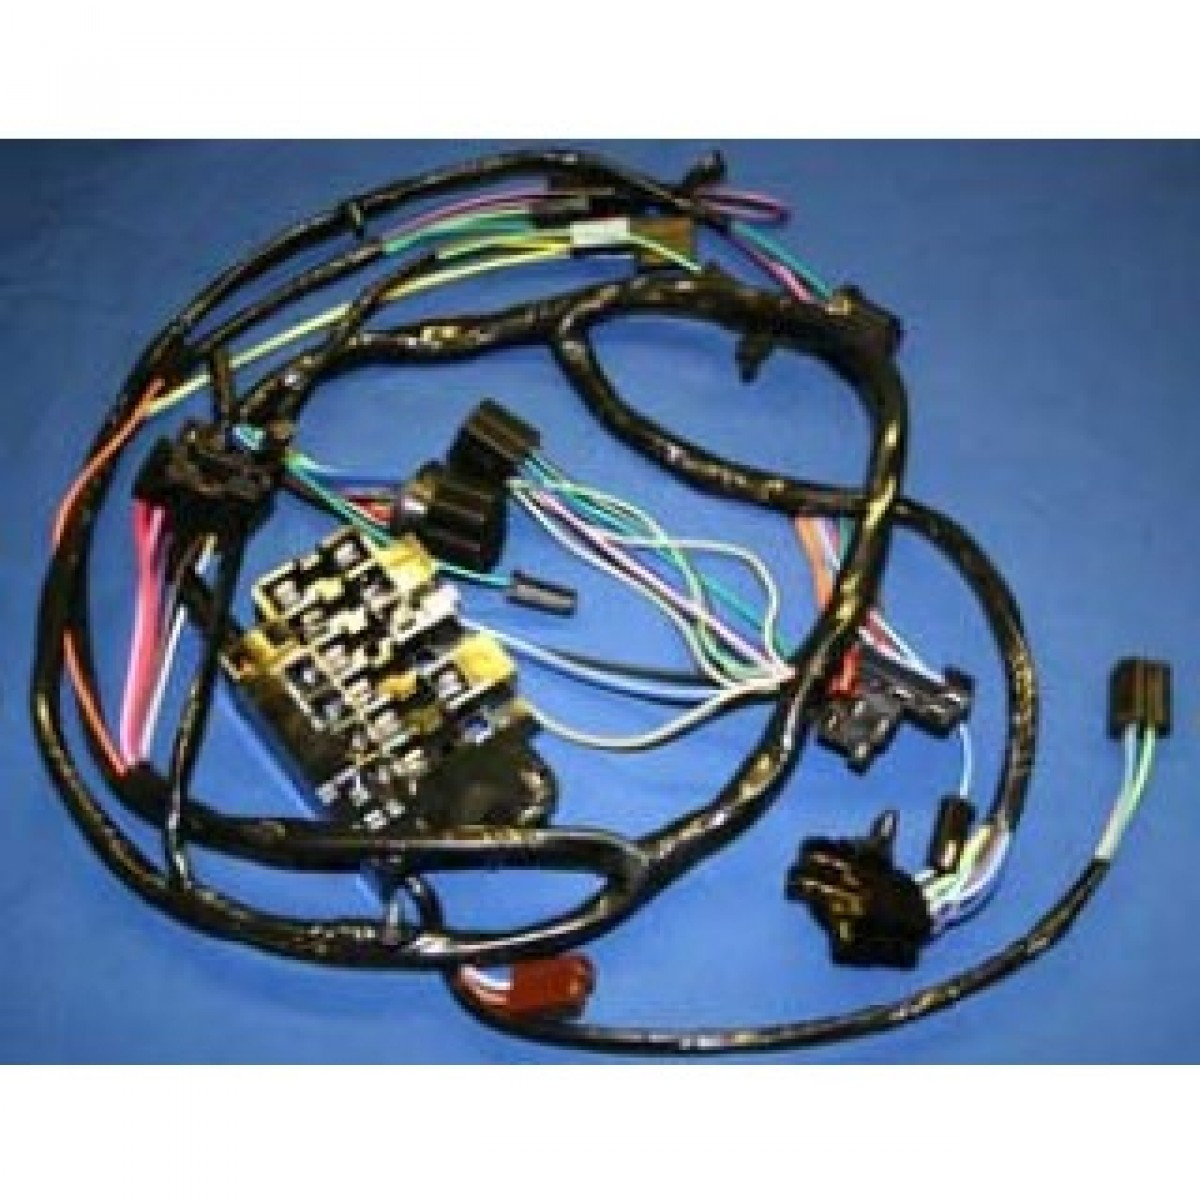 C10 Dash Harness Wire Center Cell Plantcellstructurestheir Tufesa Las Vegas Nv Typical Plant 1964 1965 Chevy With Factory Gauges Rh Code510 Com Interior 1966